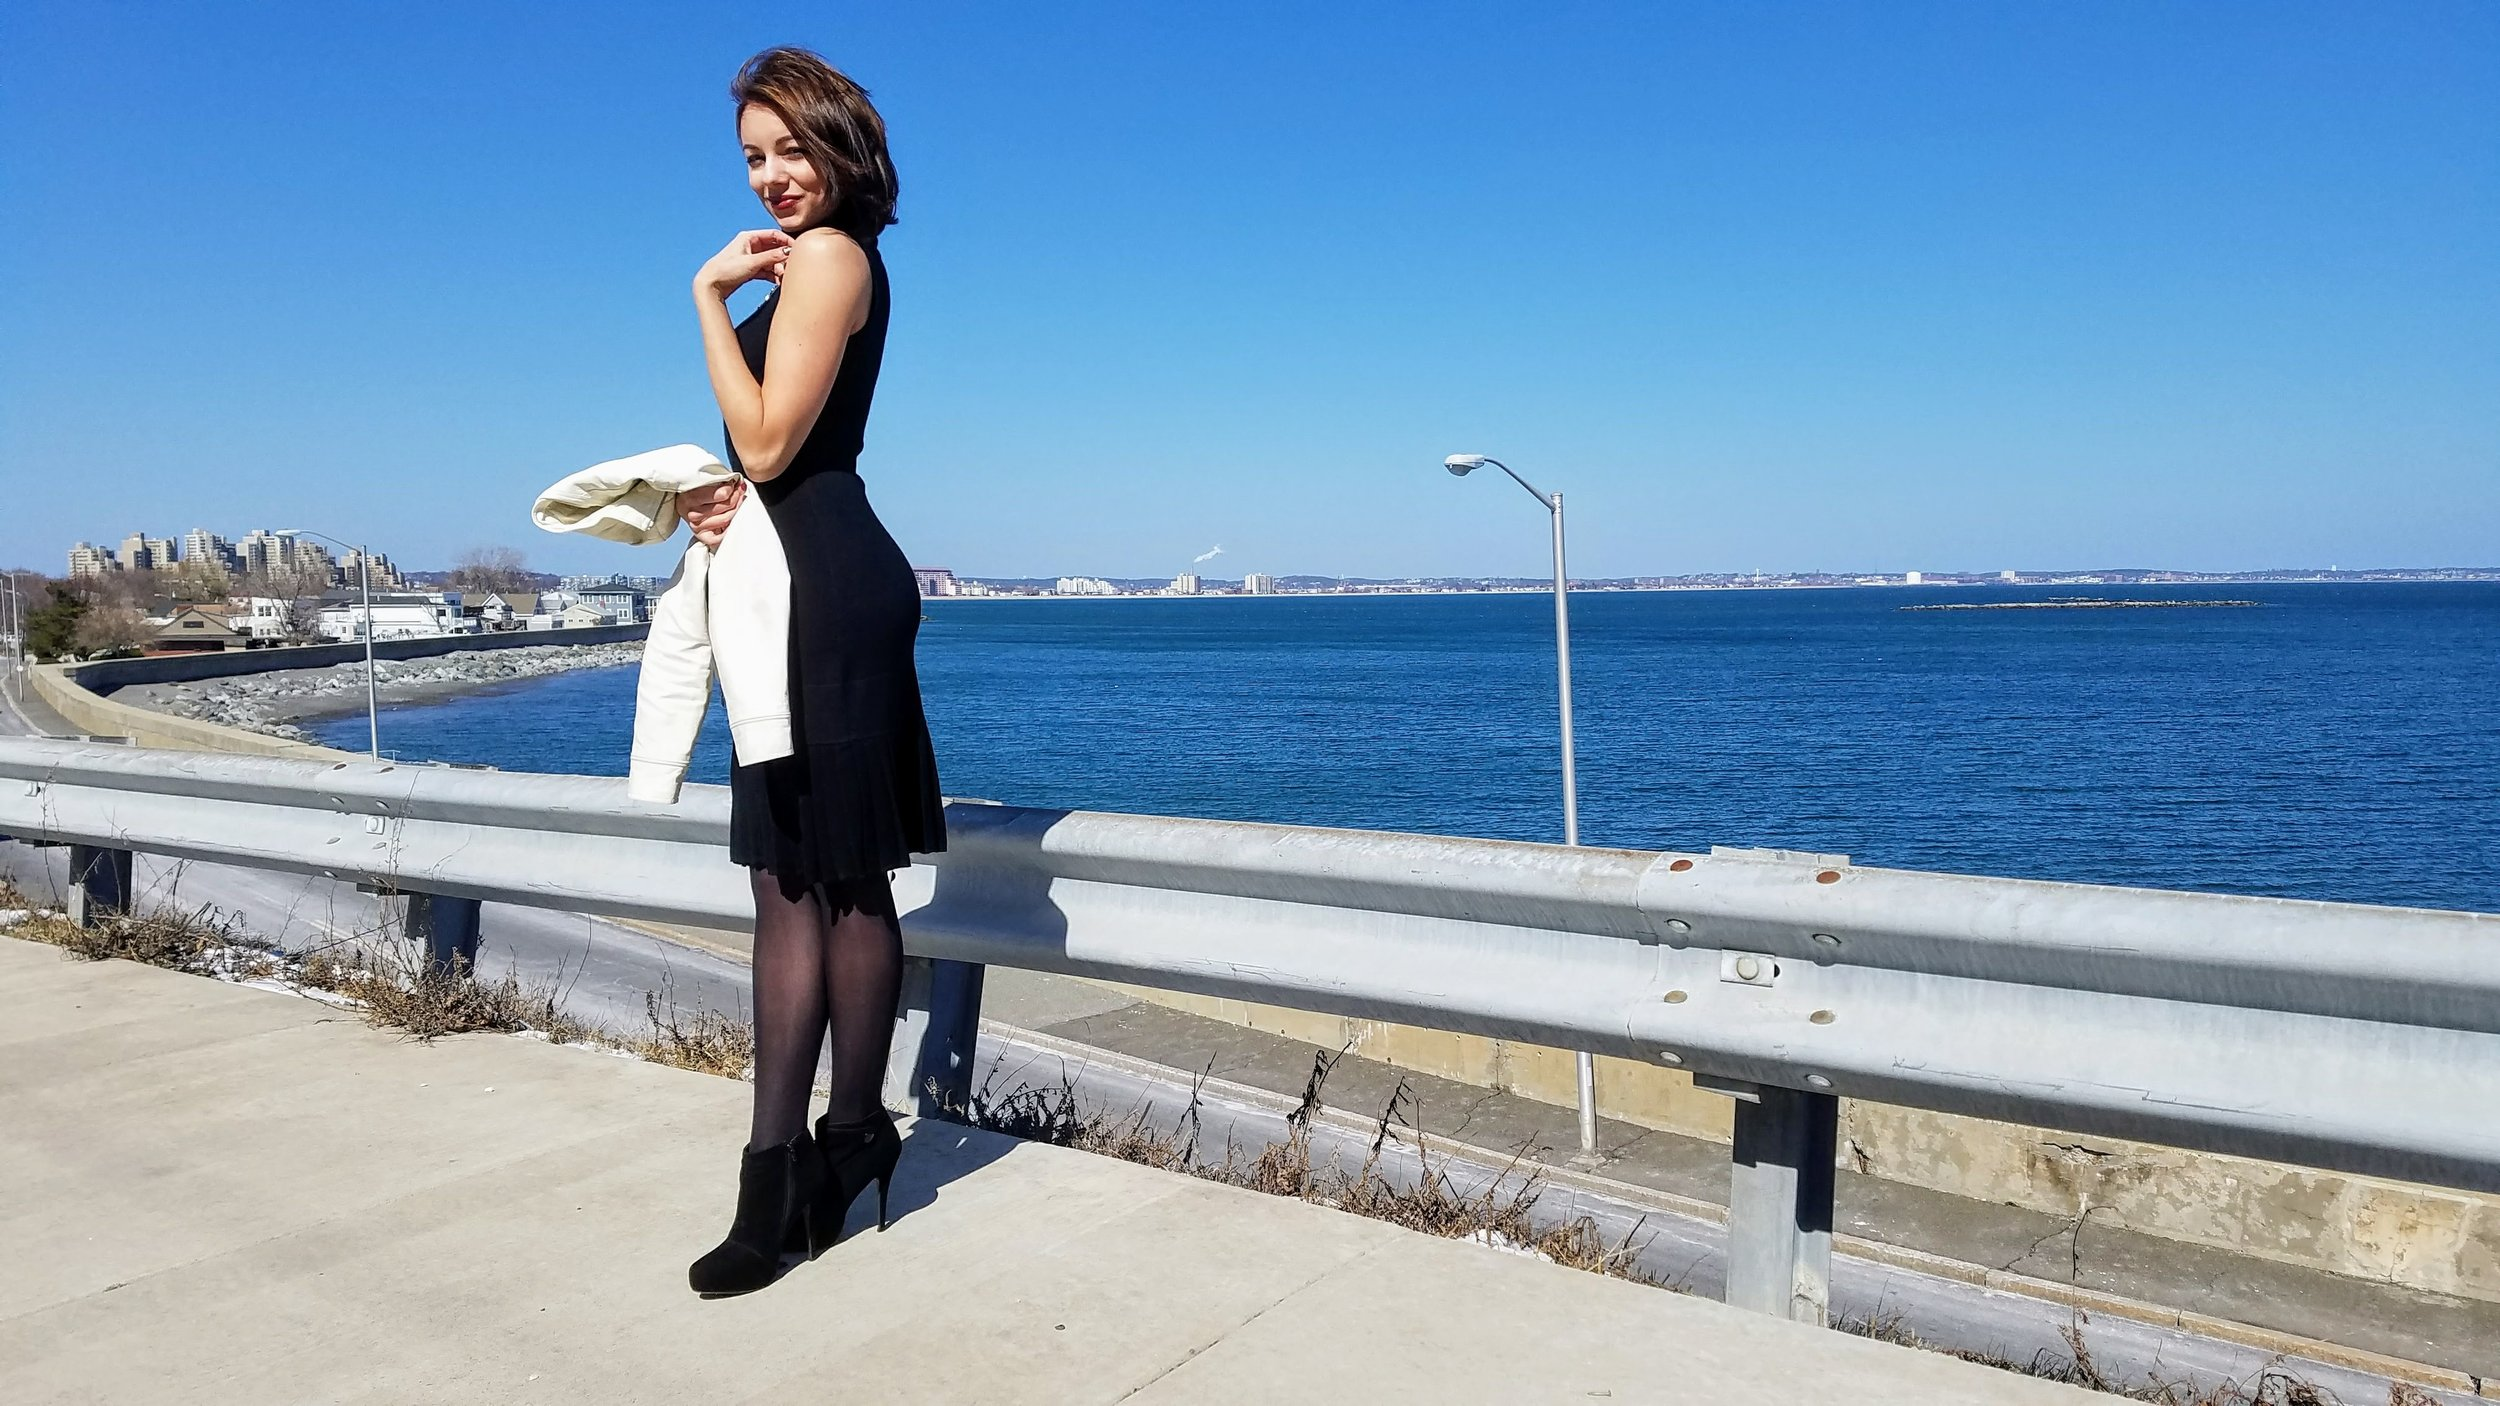 Beach view with a girl wearing a black turtleneck dress, black ankle boots, and holding a white leather jacket.